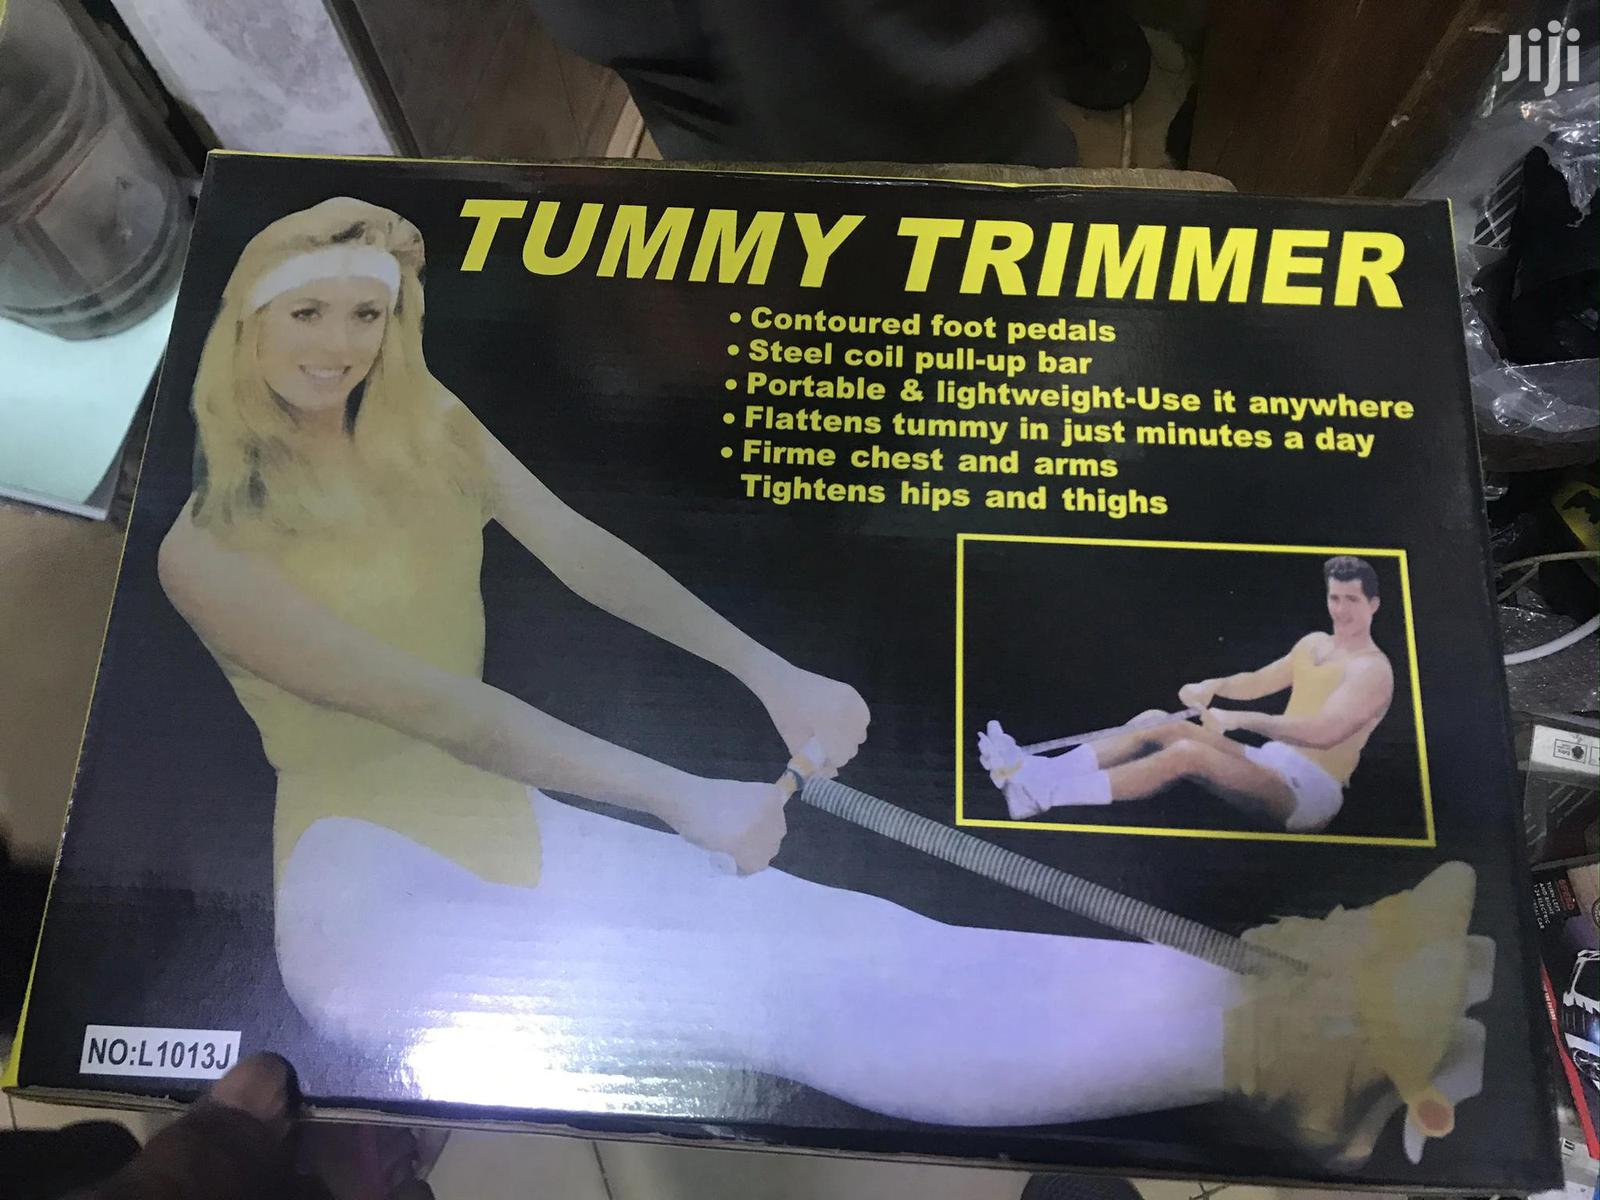 Waist Trainers And Stomach Trimmers